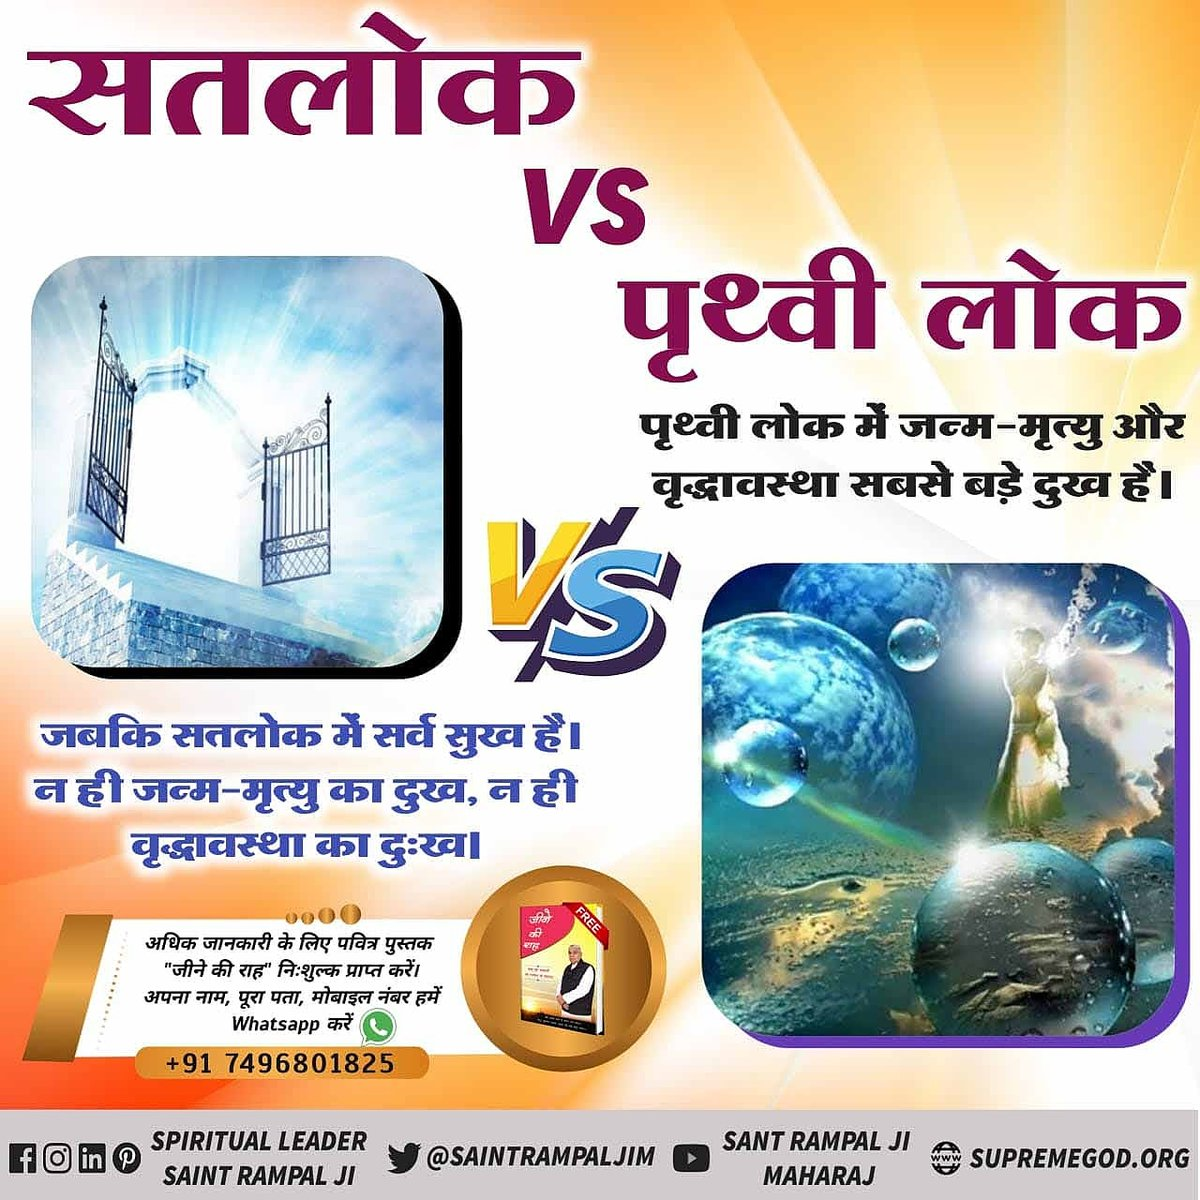 #GodMorningThrusday #अमरलोक_VS_मृत्युलोक There is not even a trace of peace in Kaal Brahm's lok. For more information visit Sant Rampal Ji Maharaj Youtube Channel  #VakeelSaabTEASER Lordkabir